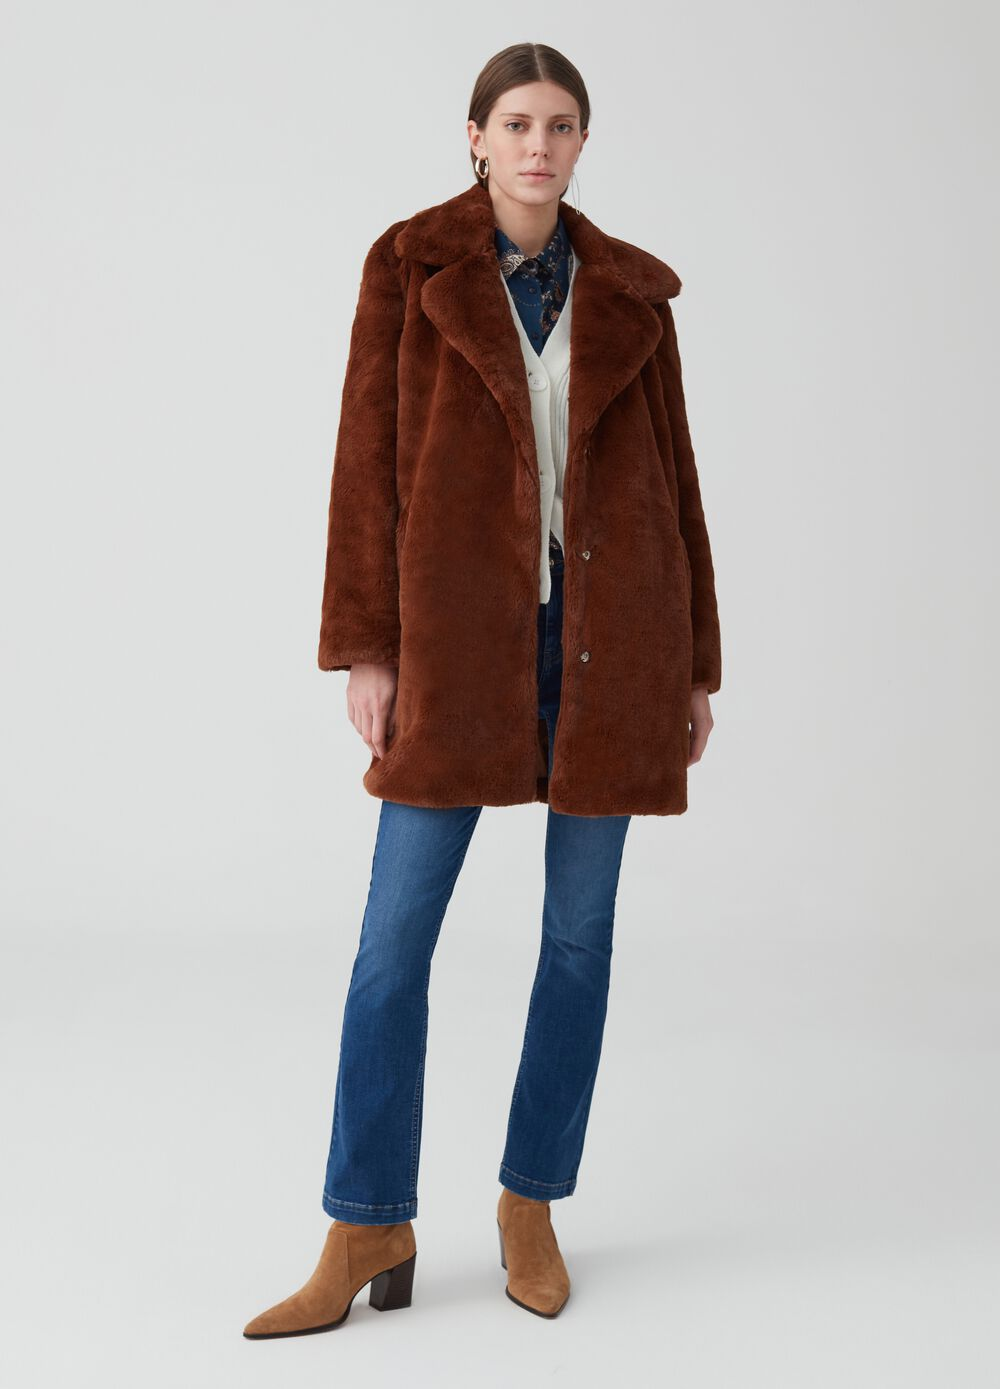 Eco-fur jacket with buttons and pockets